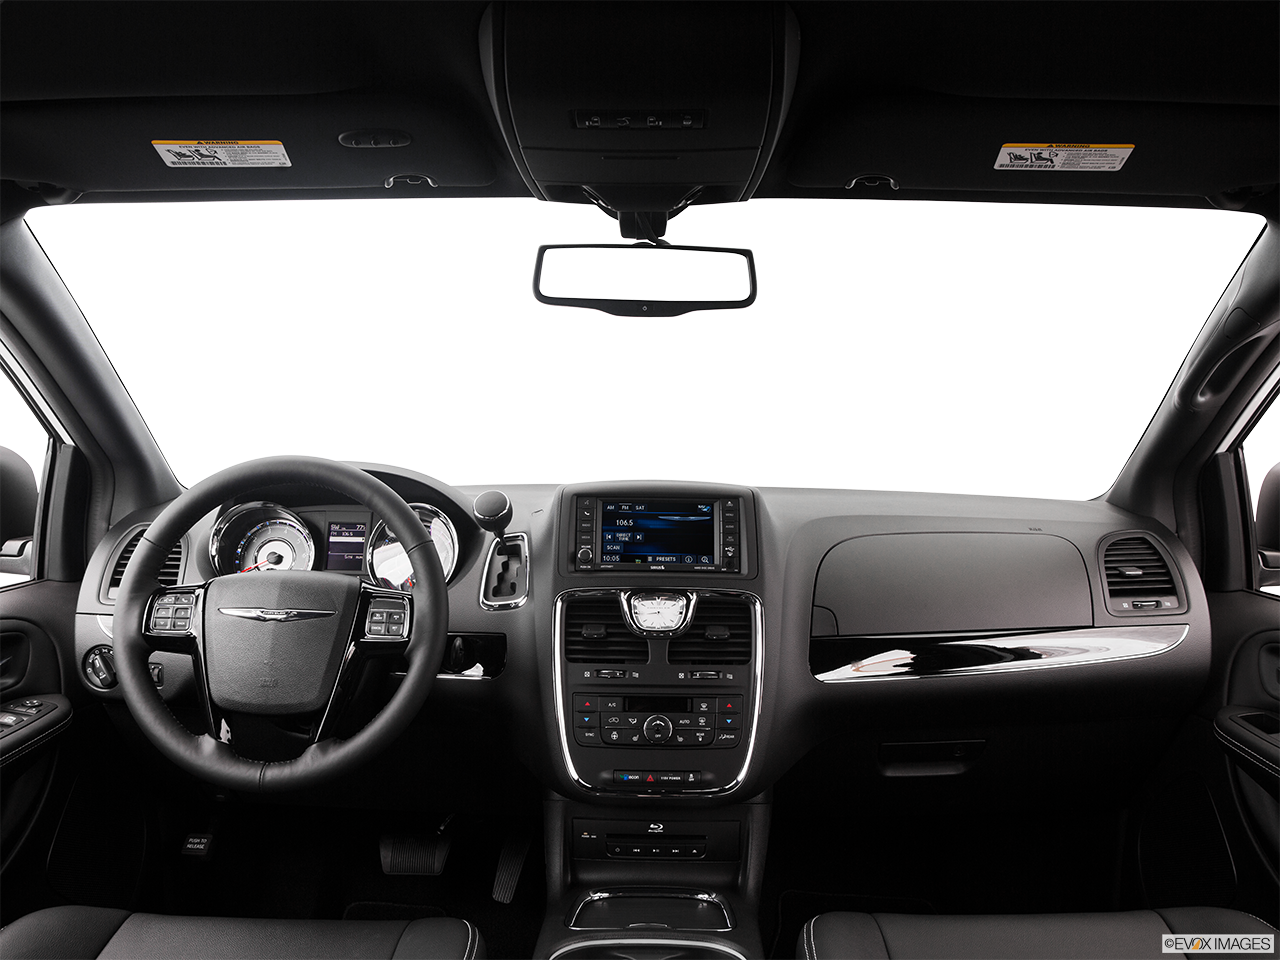 Interior View Of 2016 Chrysler Town & Country in Antioch